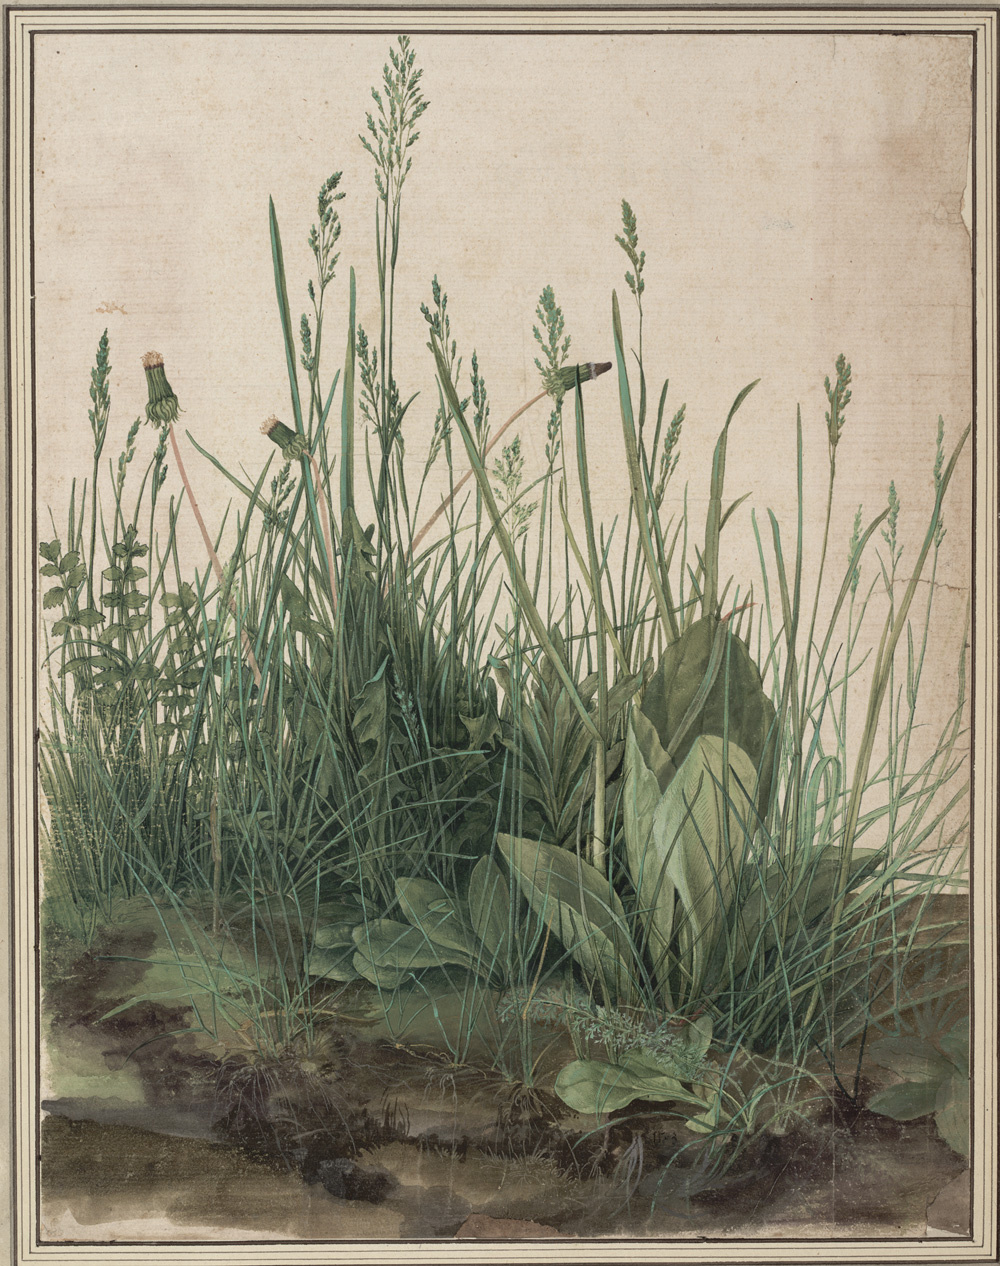 Albrecht Dürer. The large piece of turf